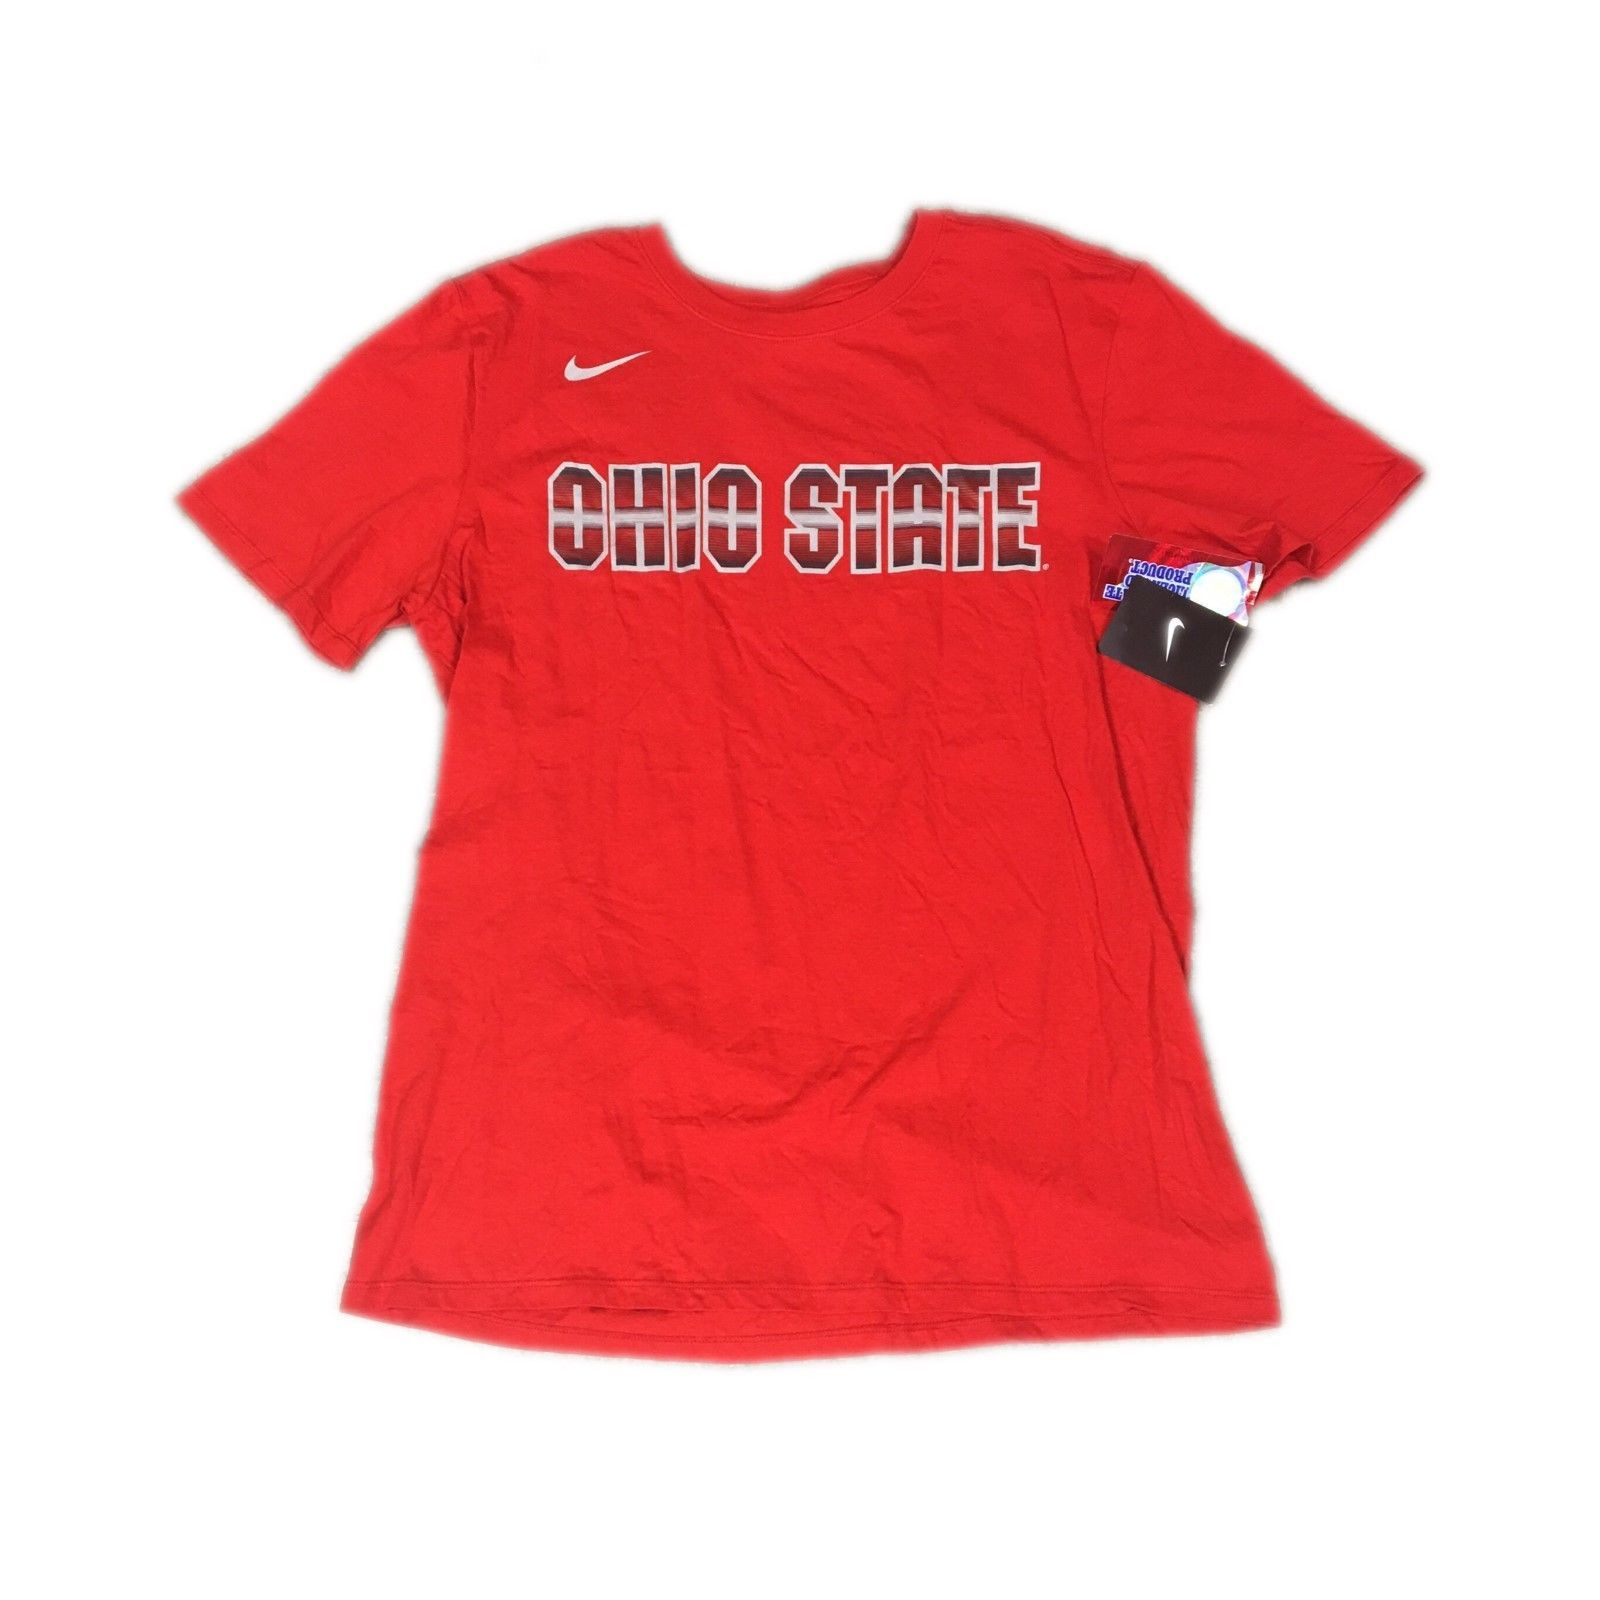 info for 86d39 b04c8 NEW NWT Ohio State Buckeyes Nike Men s and 50 similar items